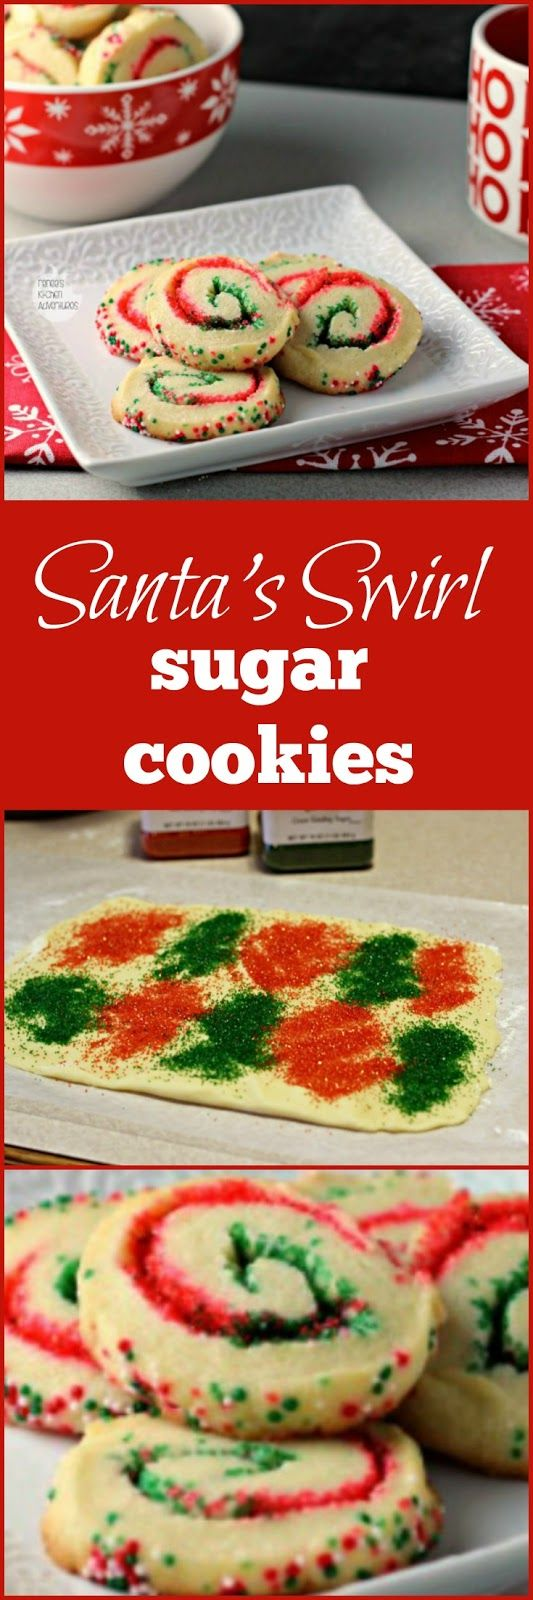 Santa's Swirl Sugar Cookies | by Renee's Kitchen Adventures - Easy holiday…